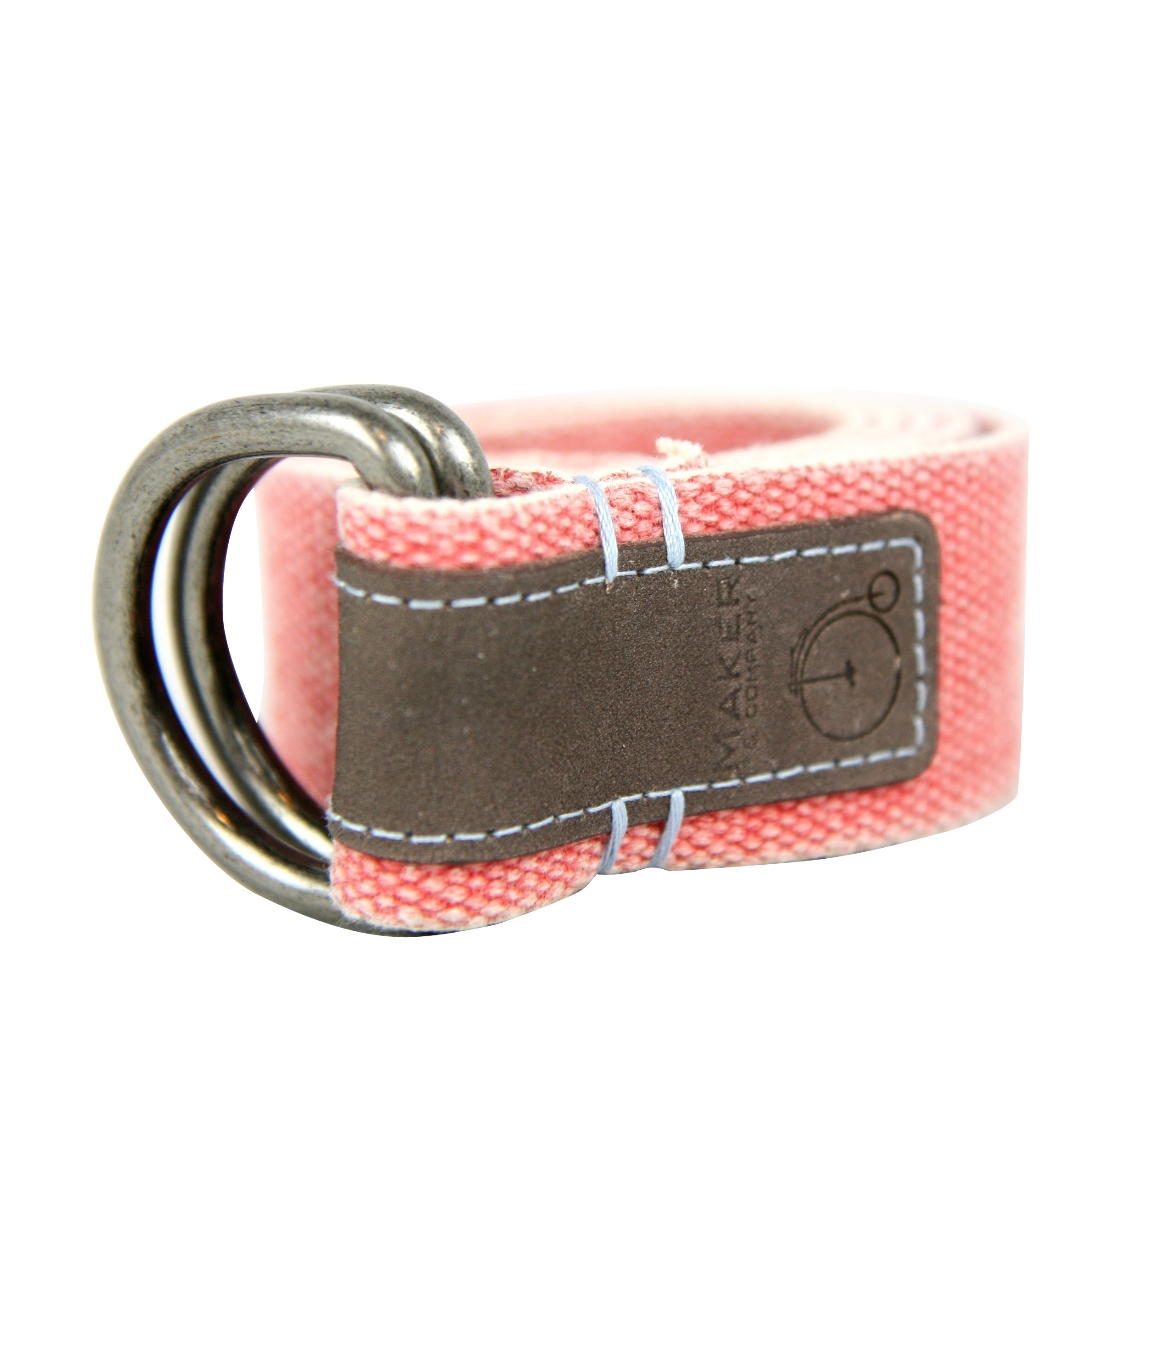 Maker & Company, THE CRIOS WASHED COTTON BELT, Red, Number 1